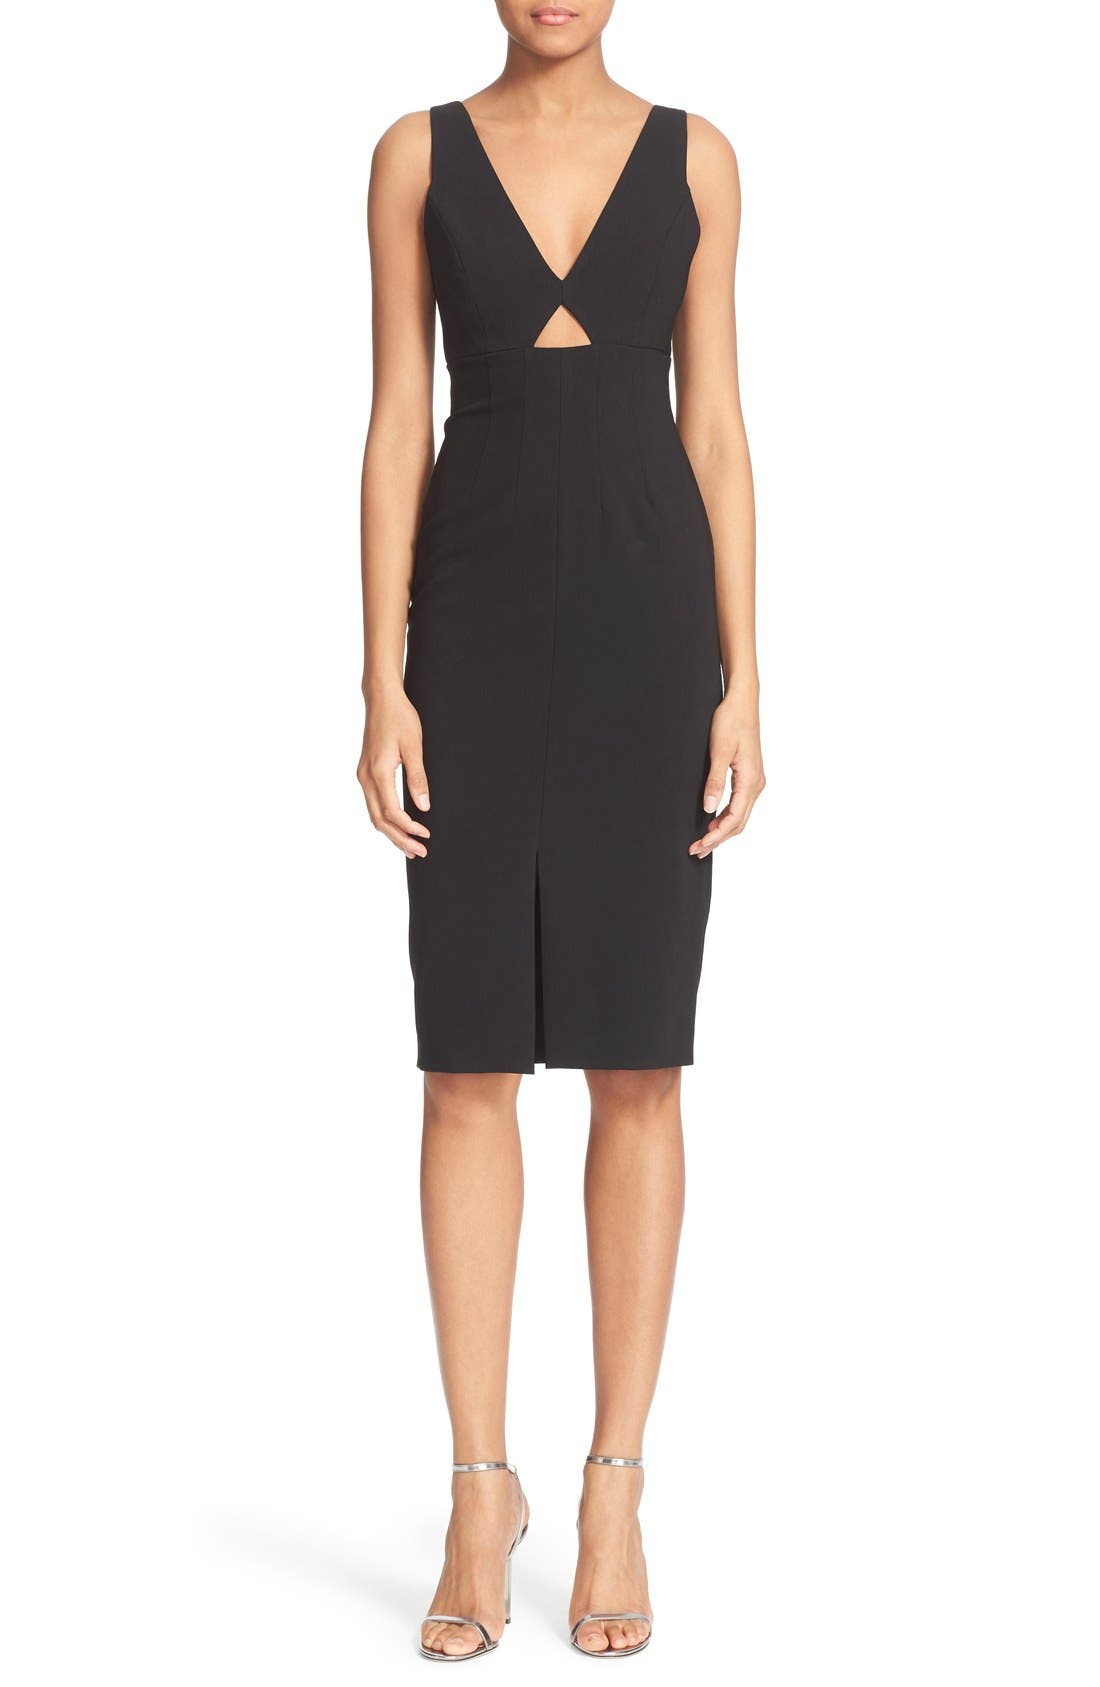 Alternate Image 1 Selected - Alice + Olivia 'Dash' V-Neck Midi Dress